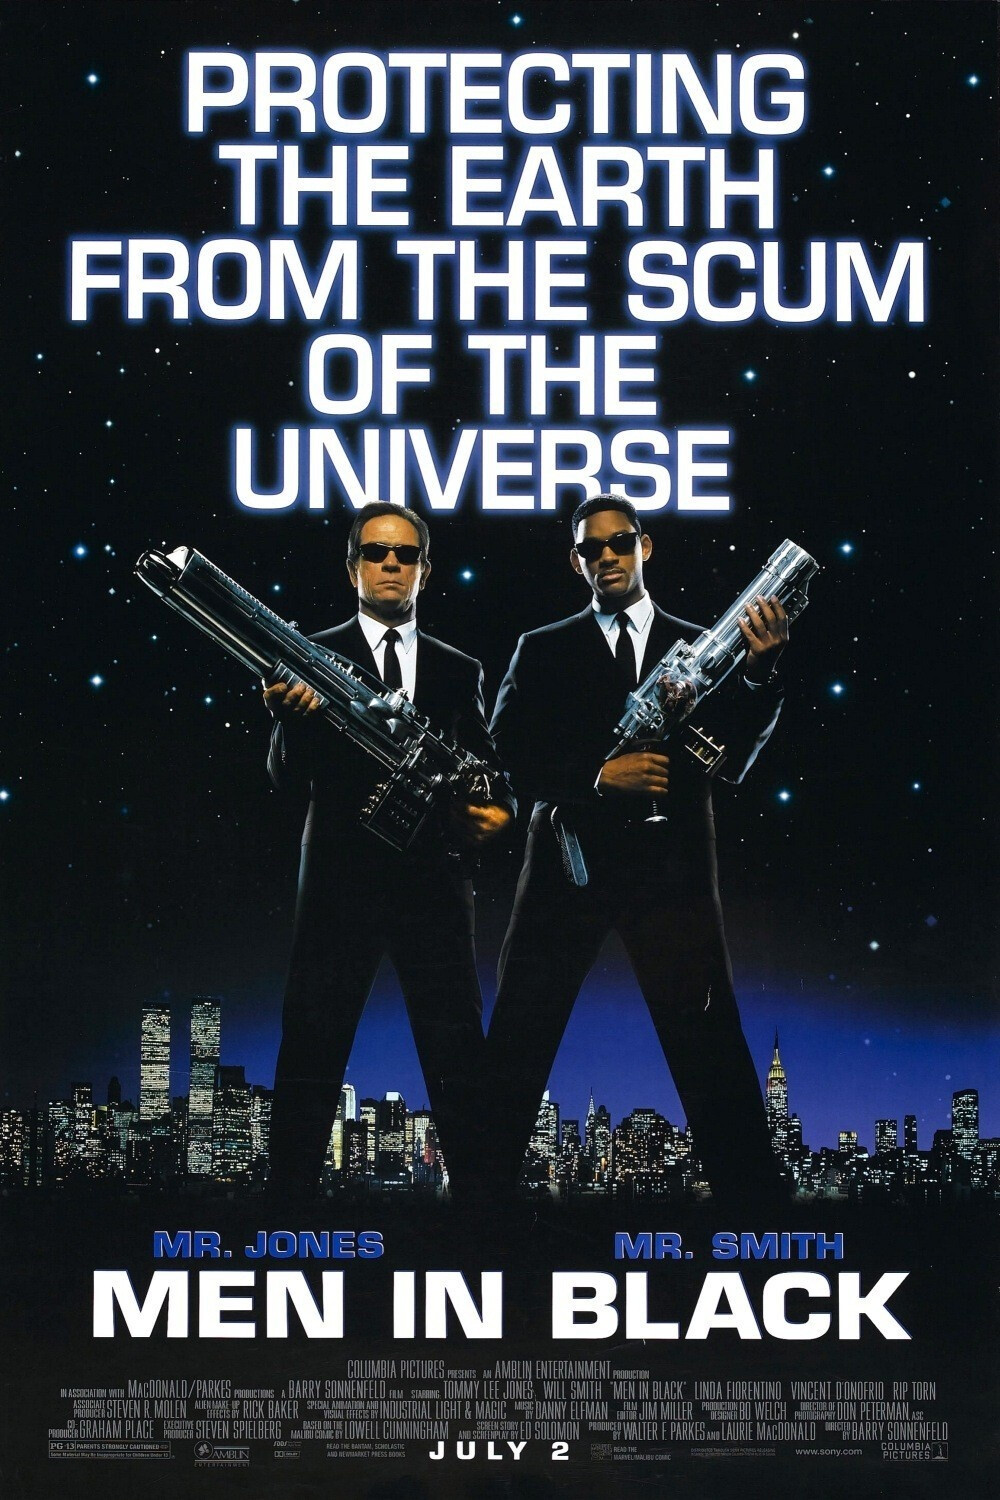 Men in Black (1997)(*)